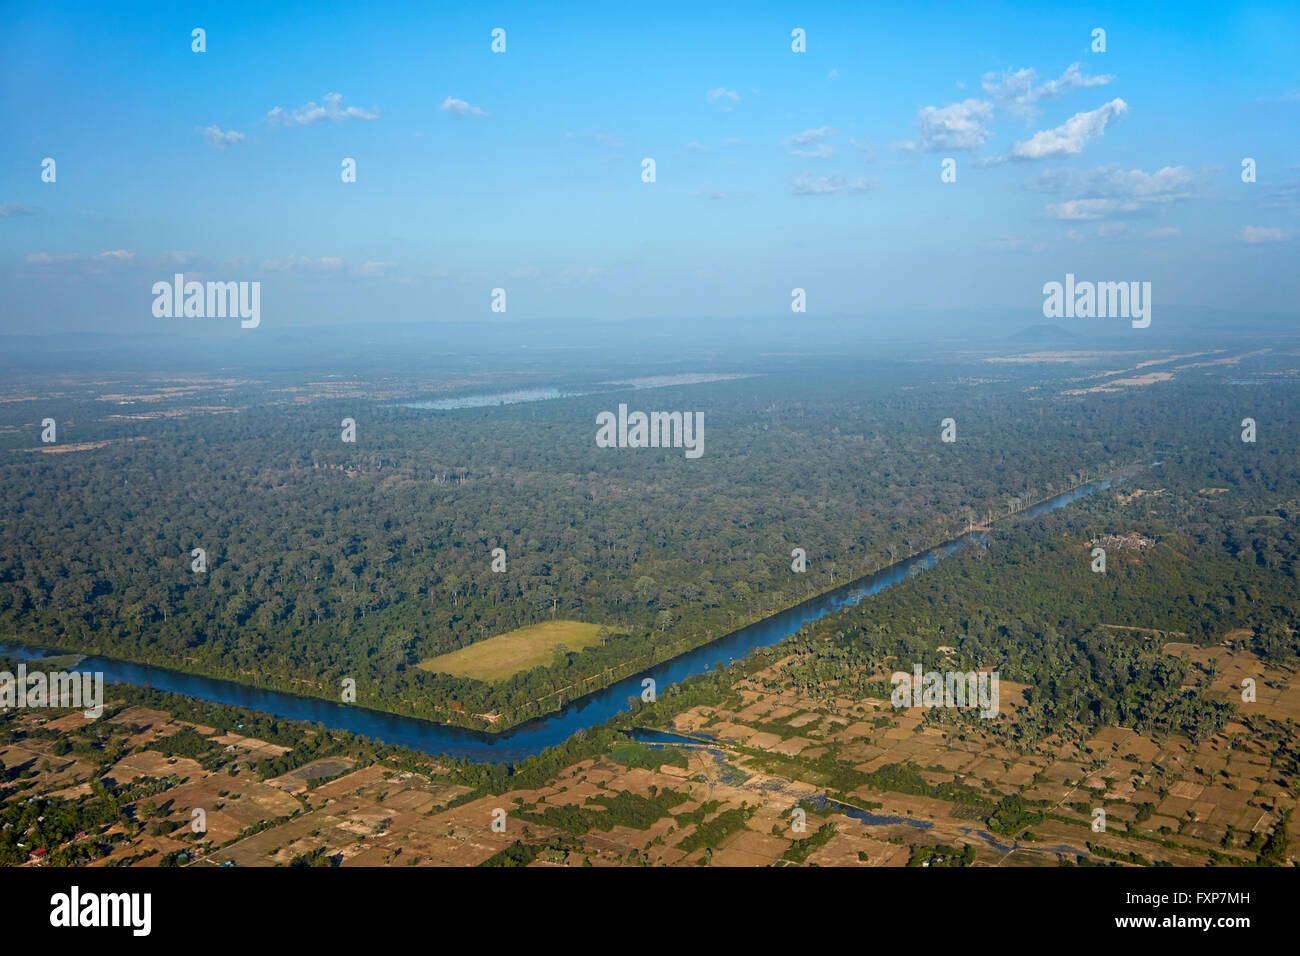 Ancient moat around Angkor Thom temple site, Angkor World Heritage Site, near Siem Reap, Cambodia - aerial - Stock Image